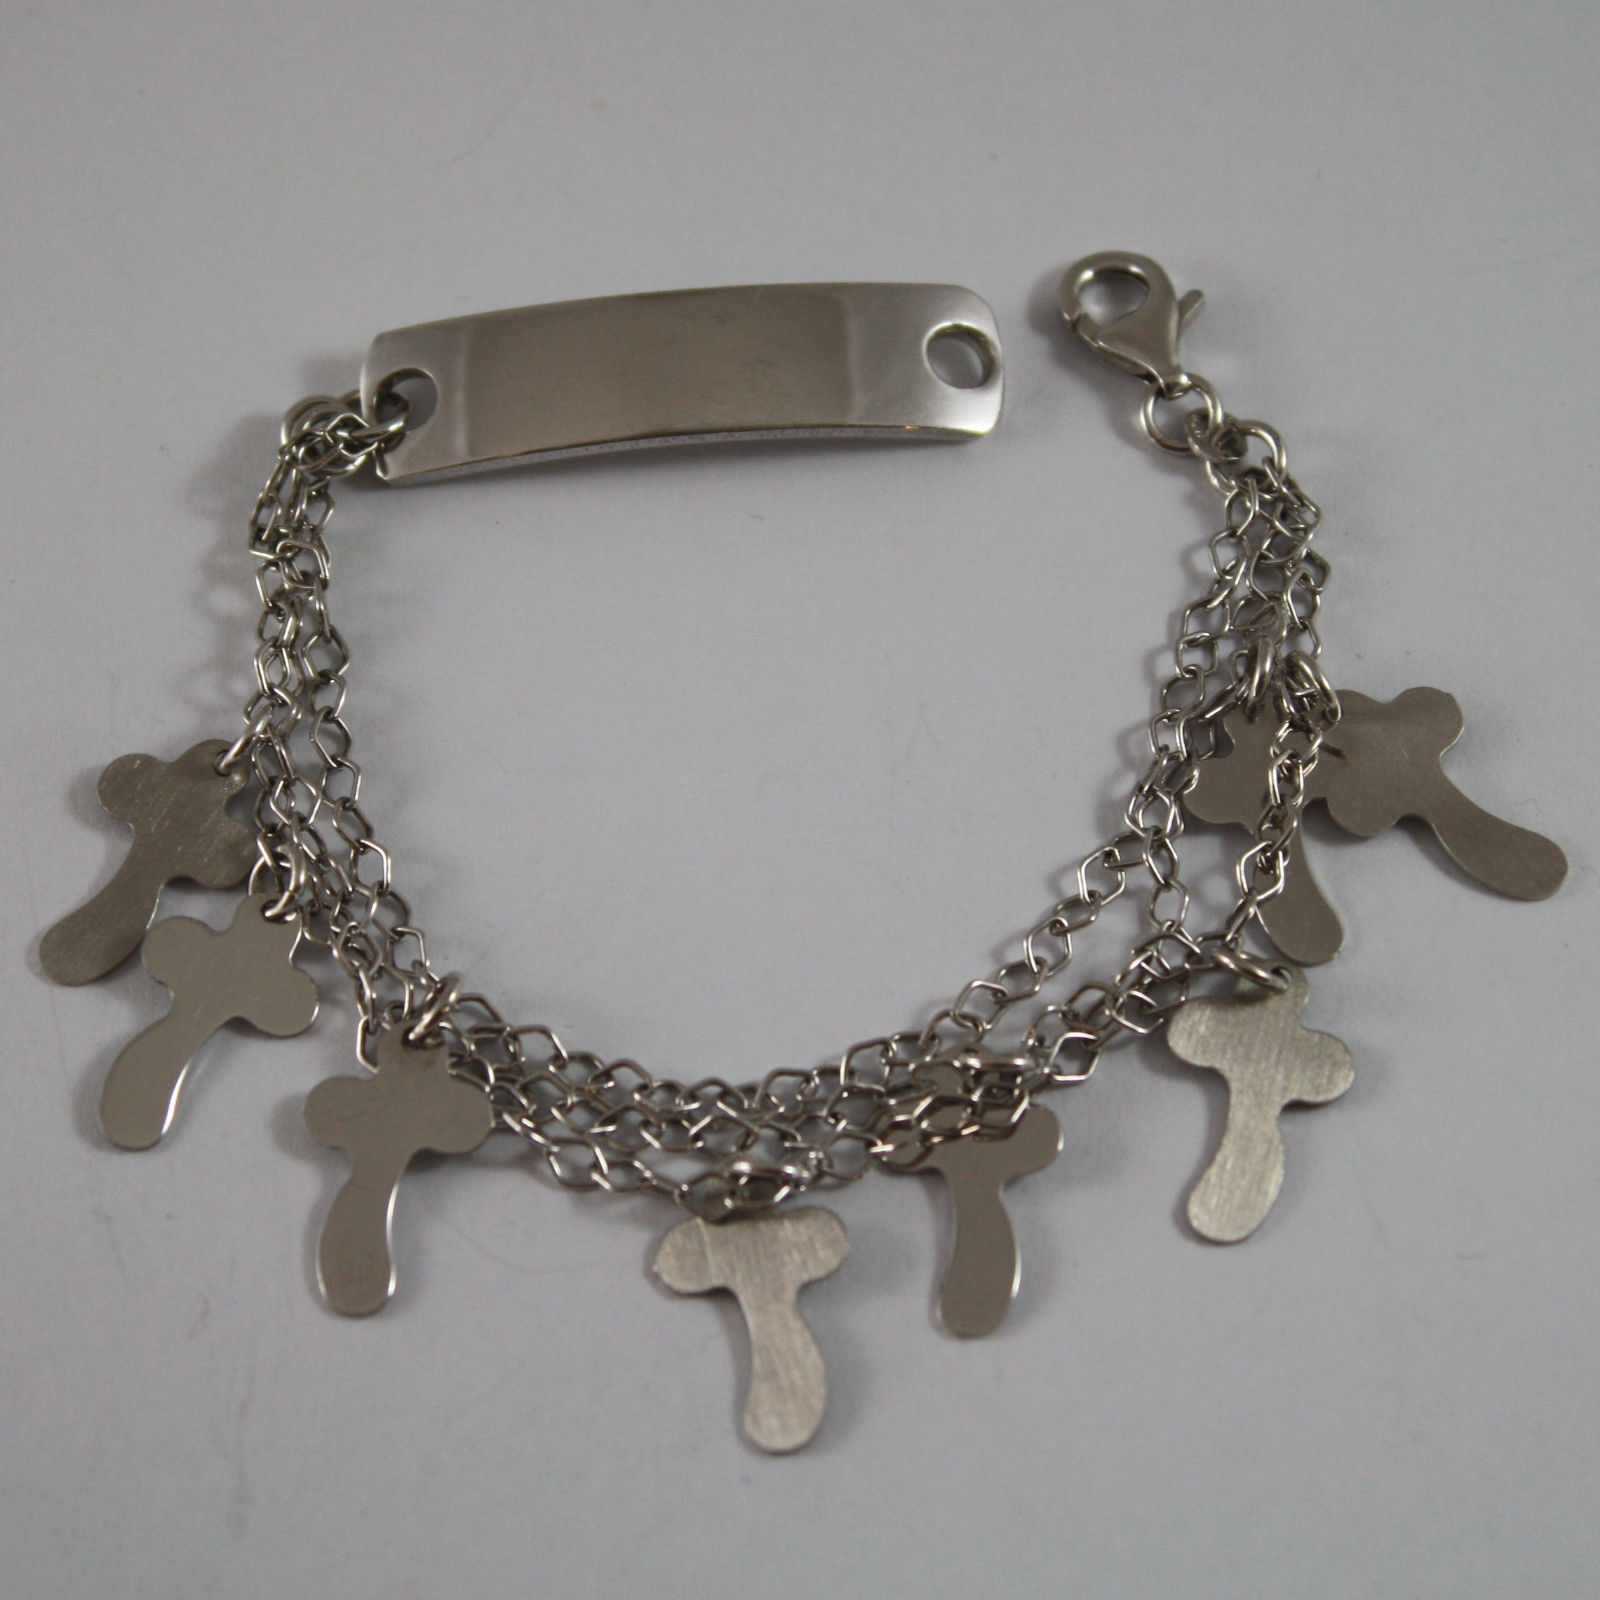 .925 RHODIUM SILVER MULTI STRAND BRACELET WITH PLATE AND CROSSES